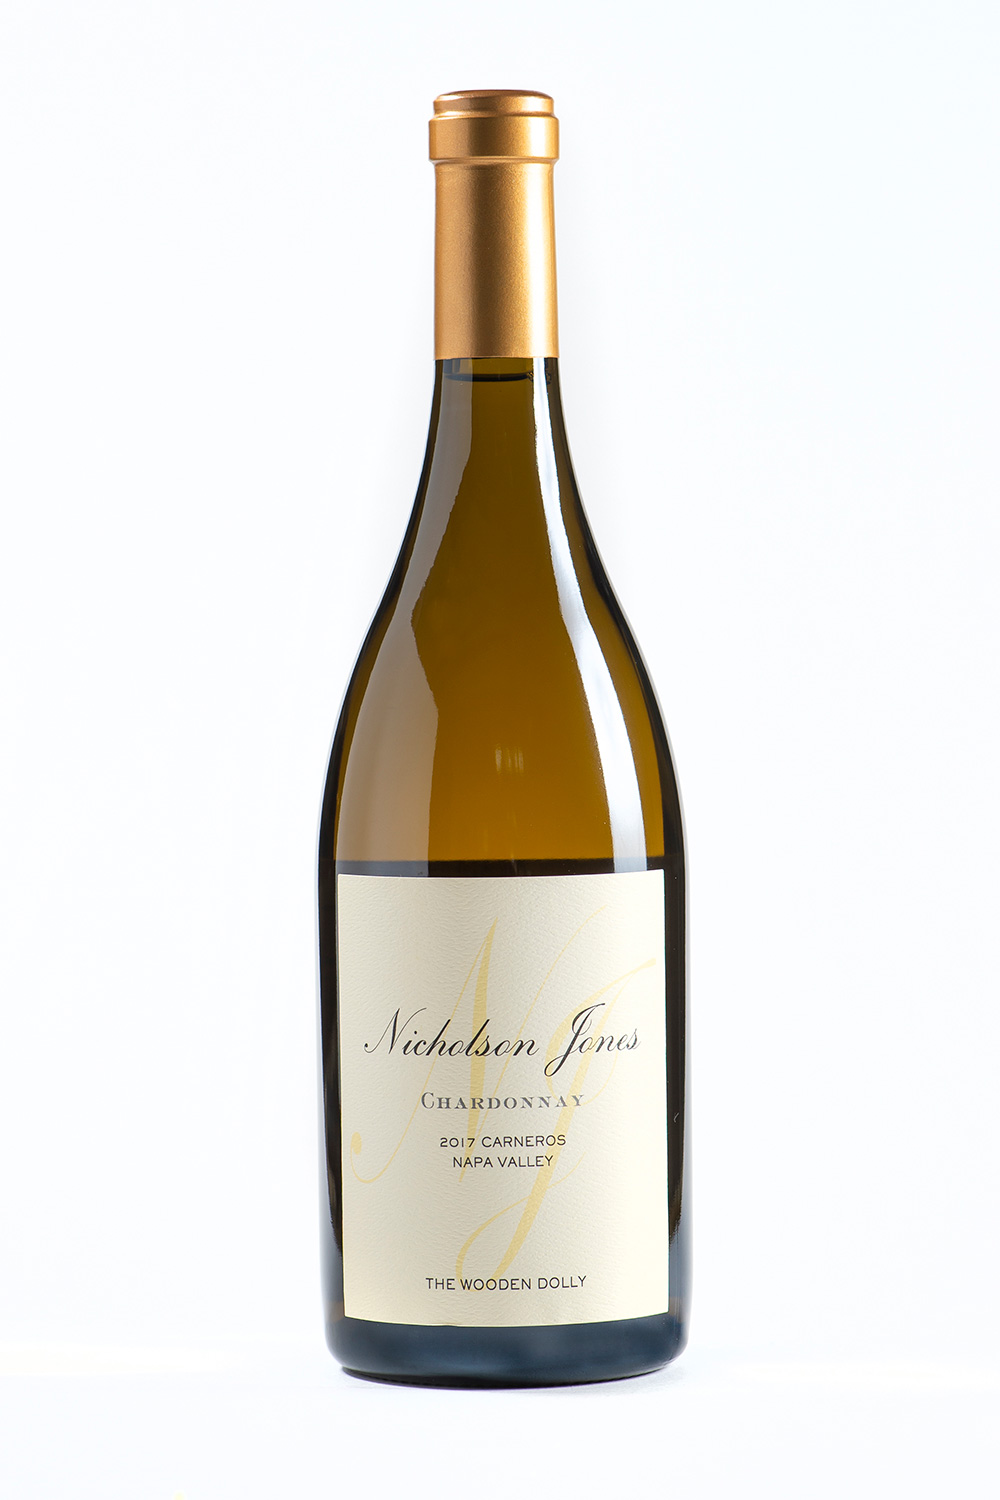 2017 Wooden Dolly Chardonnay  - Nicholson Jones Selections